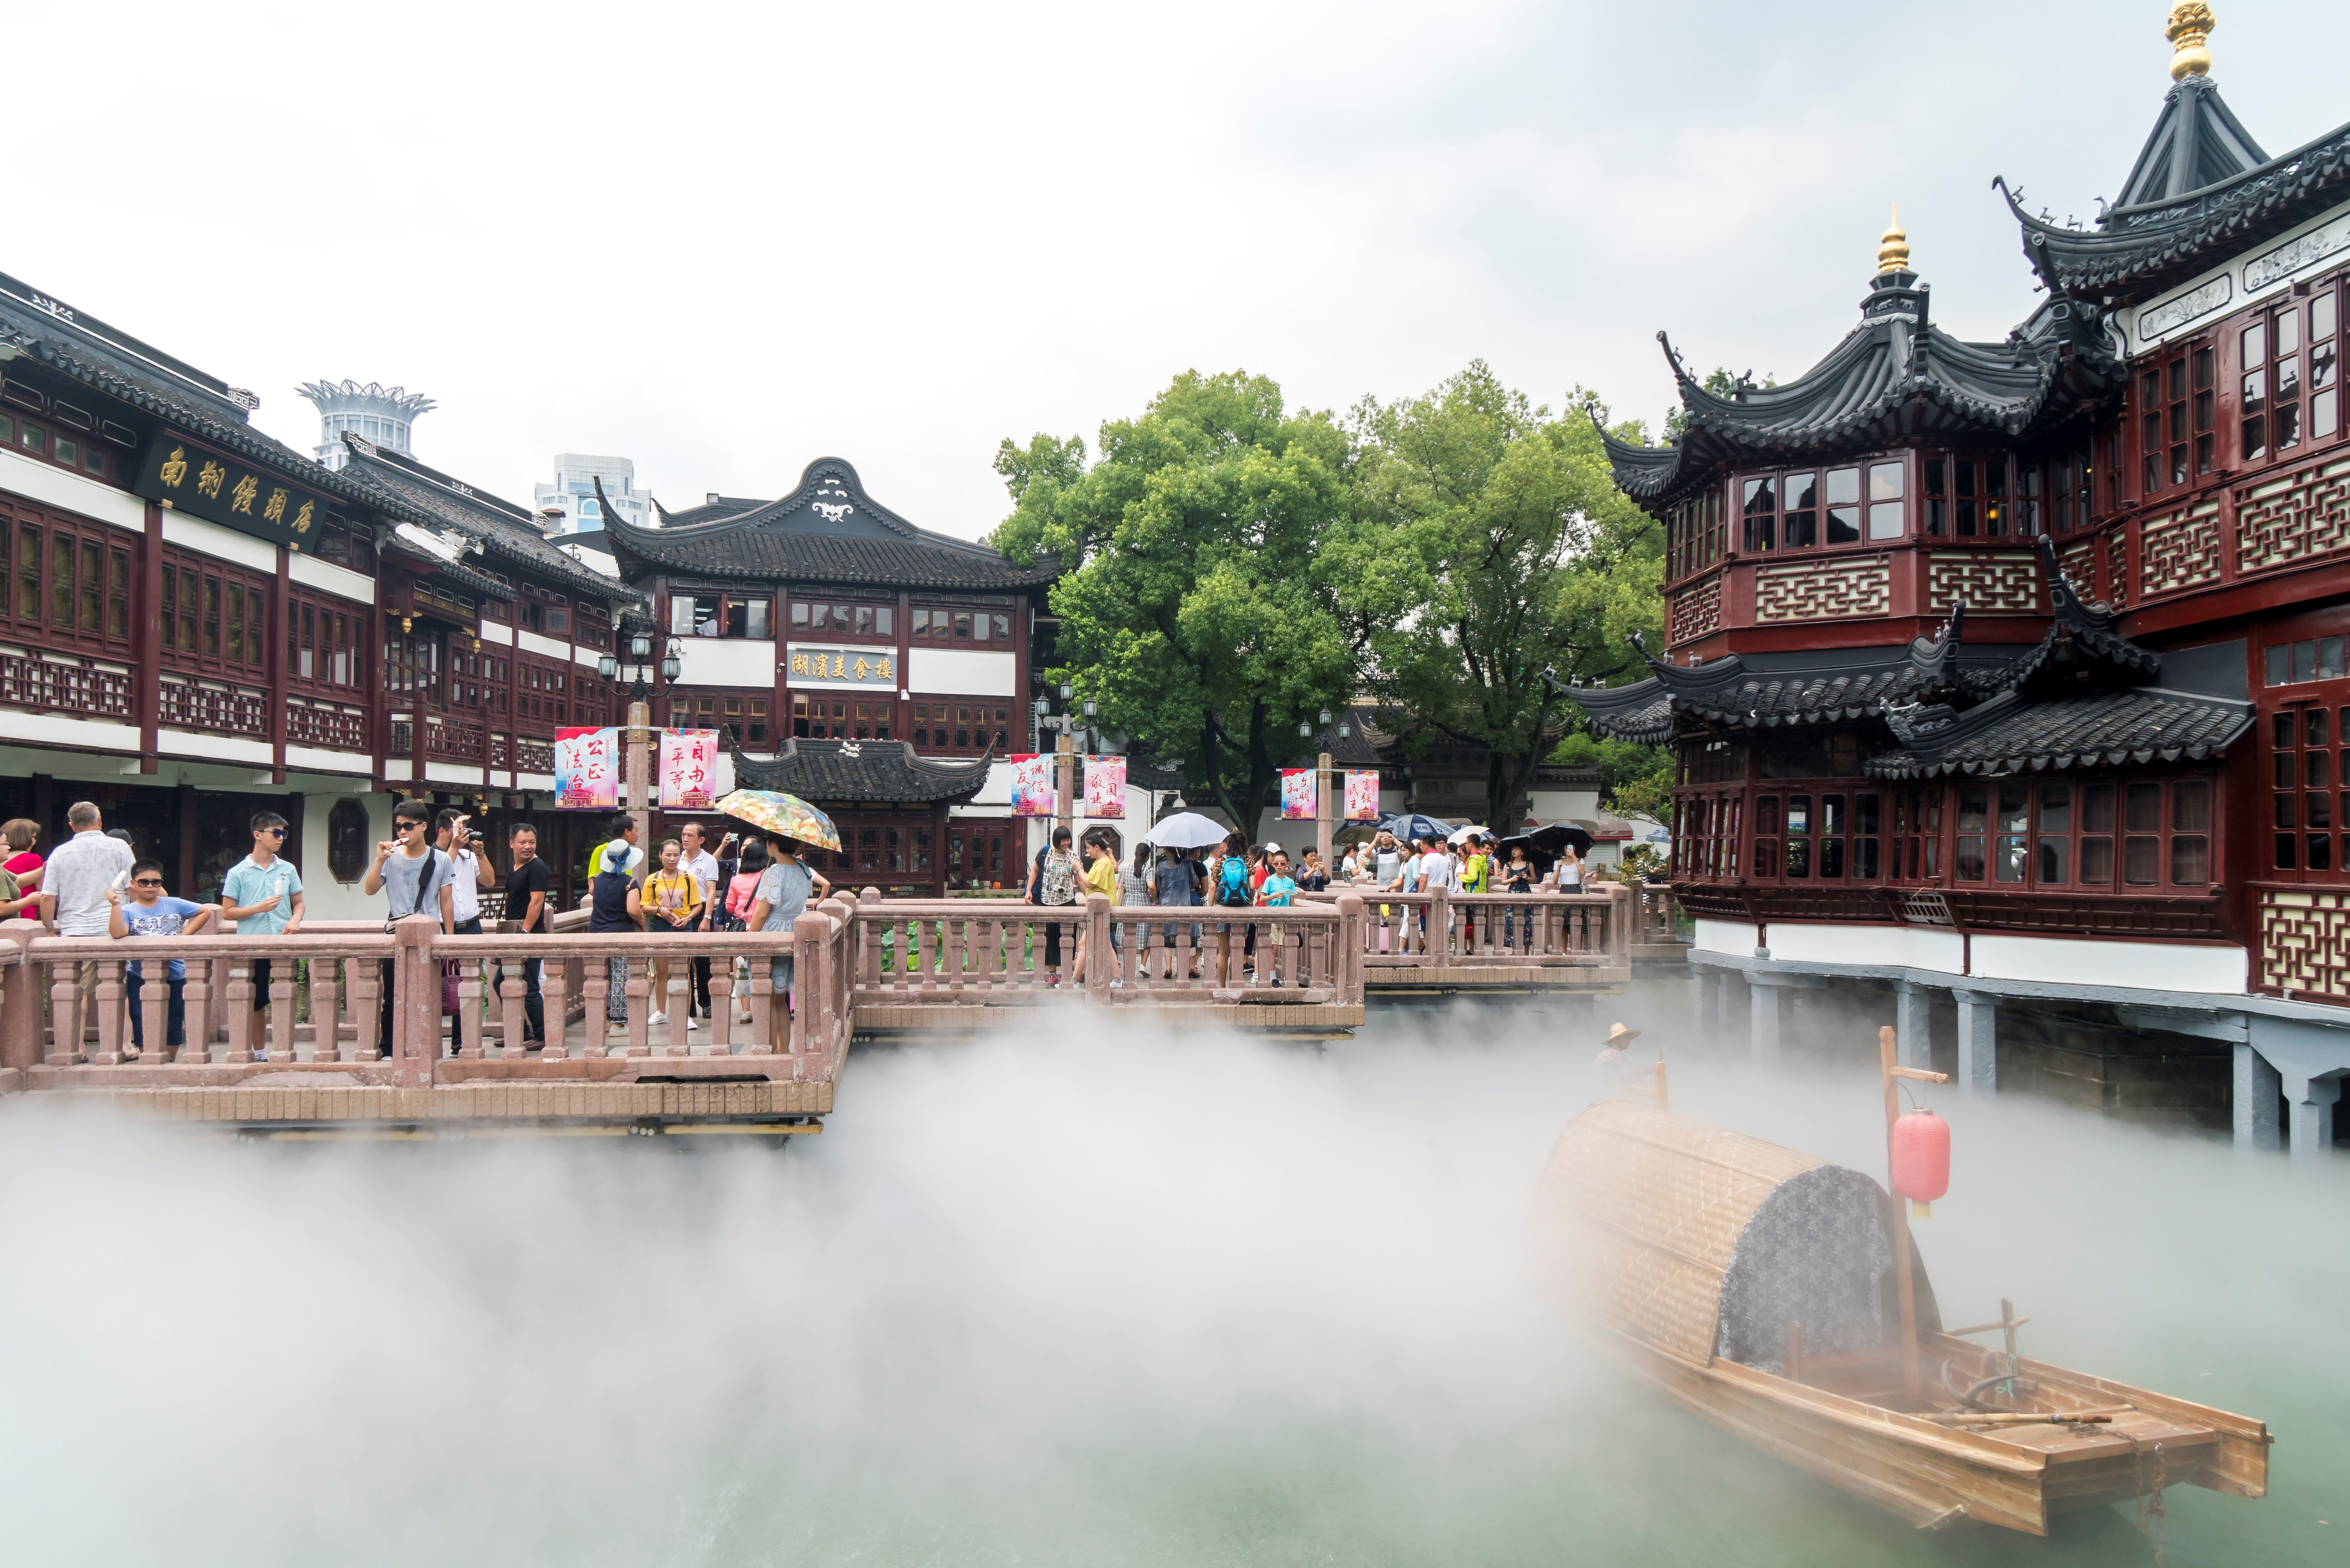 Mist sprayers offer cool respite for tourists in Yuyuan Garden in Shanghai on July 13, 2017. -- Imaginechina